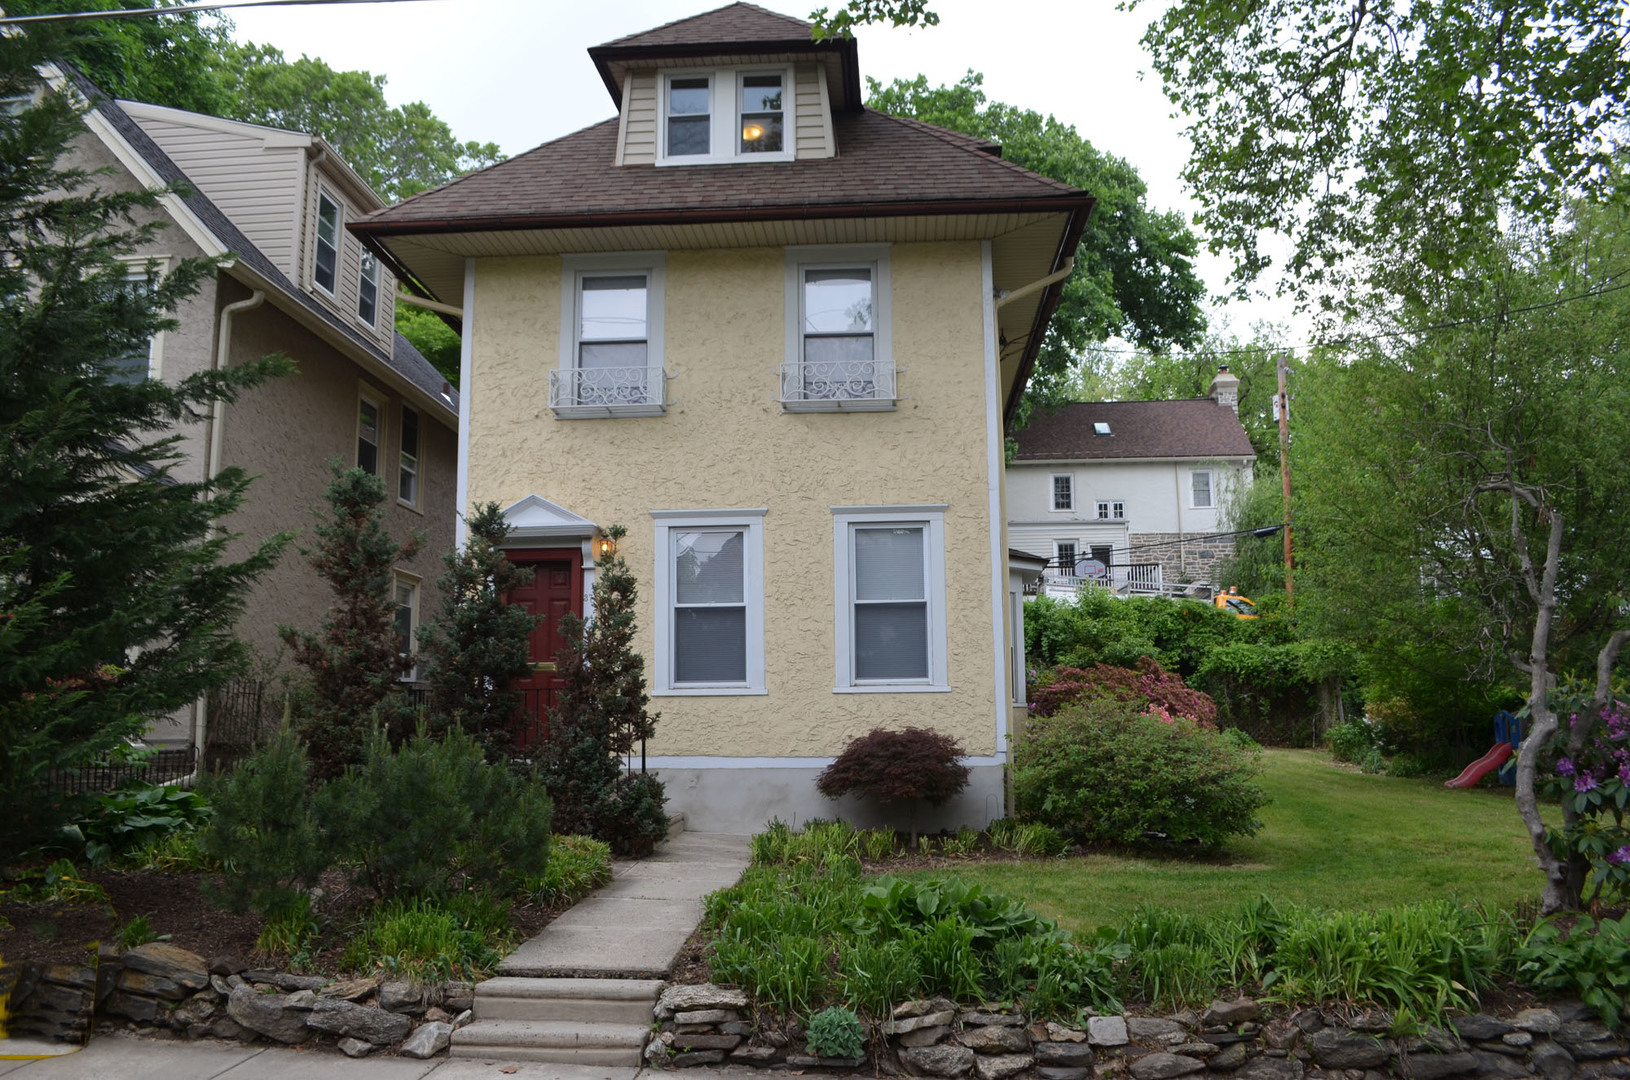 House for Rent in Bala Cynwyd